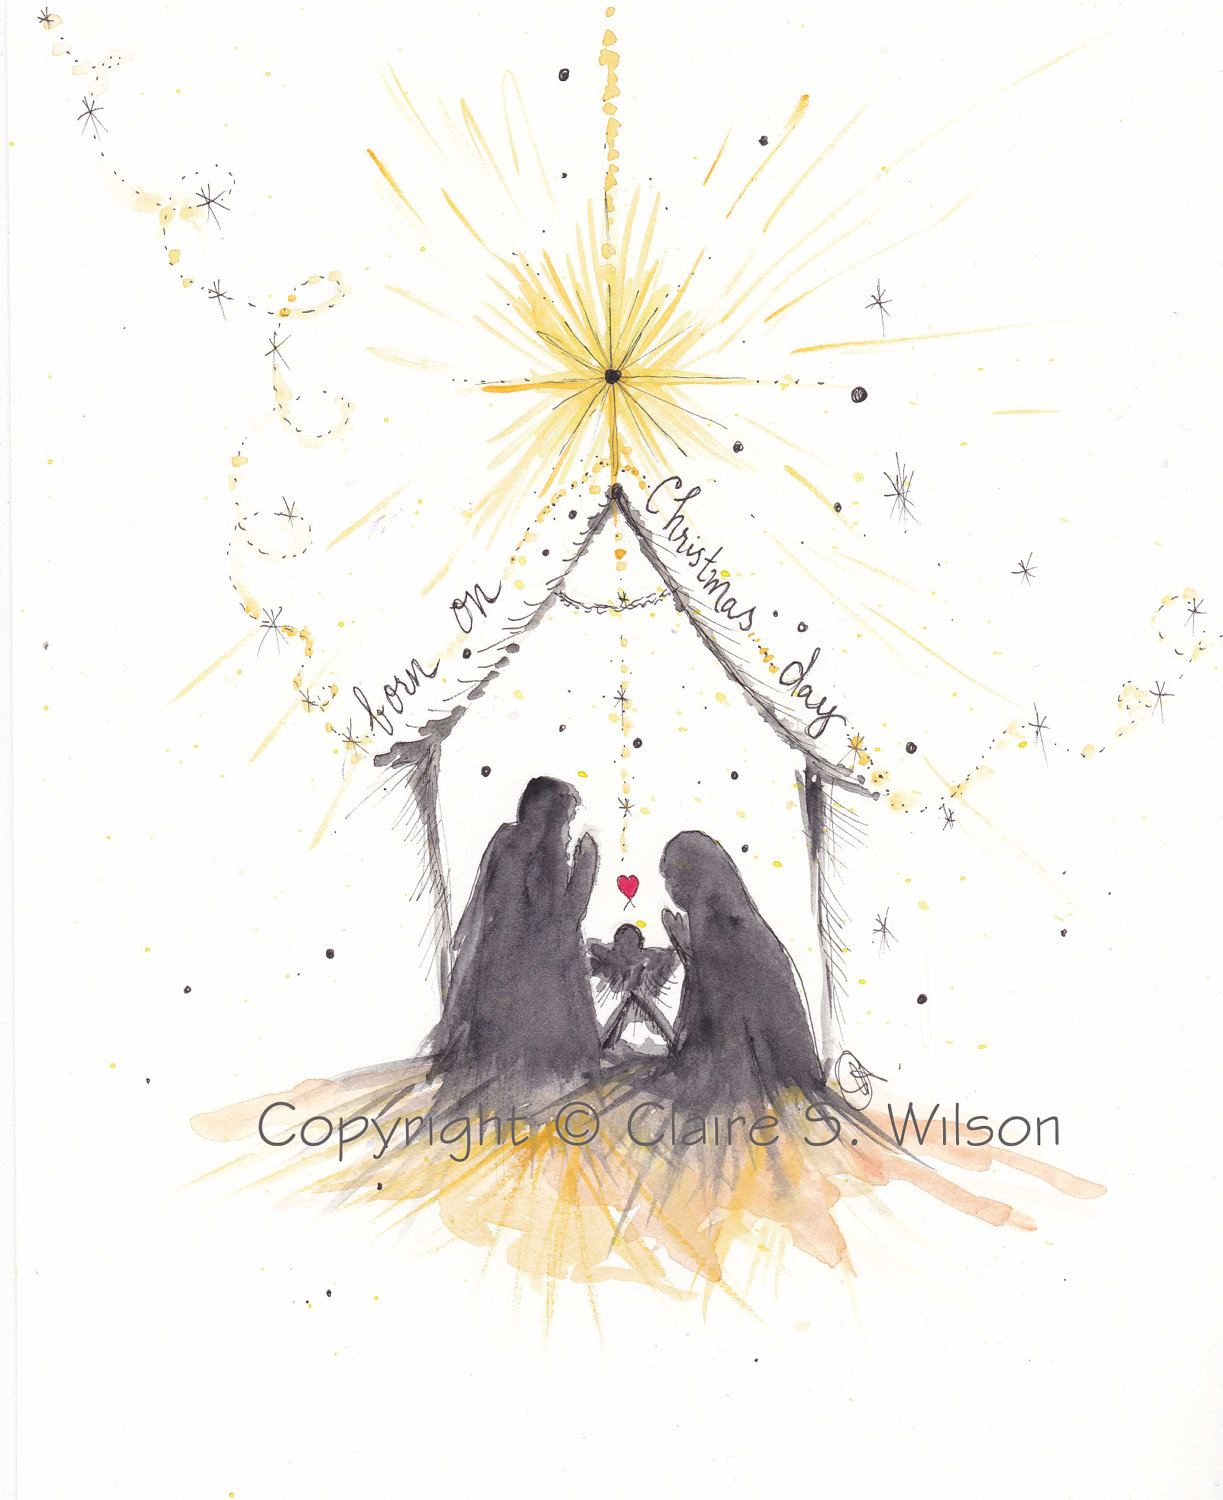 Nativity Limited Edition Original Watercolor 8x10 50 00 Via